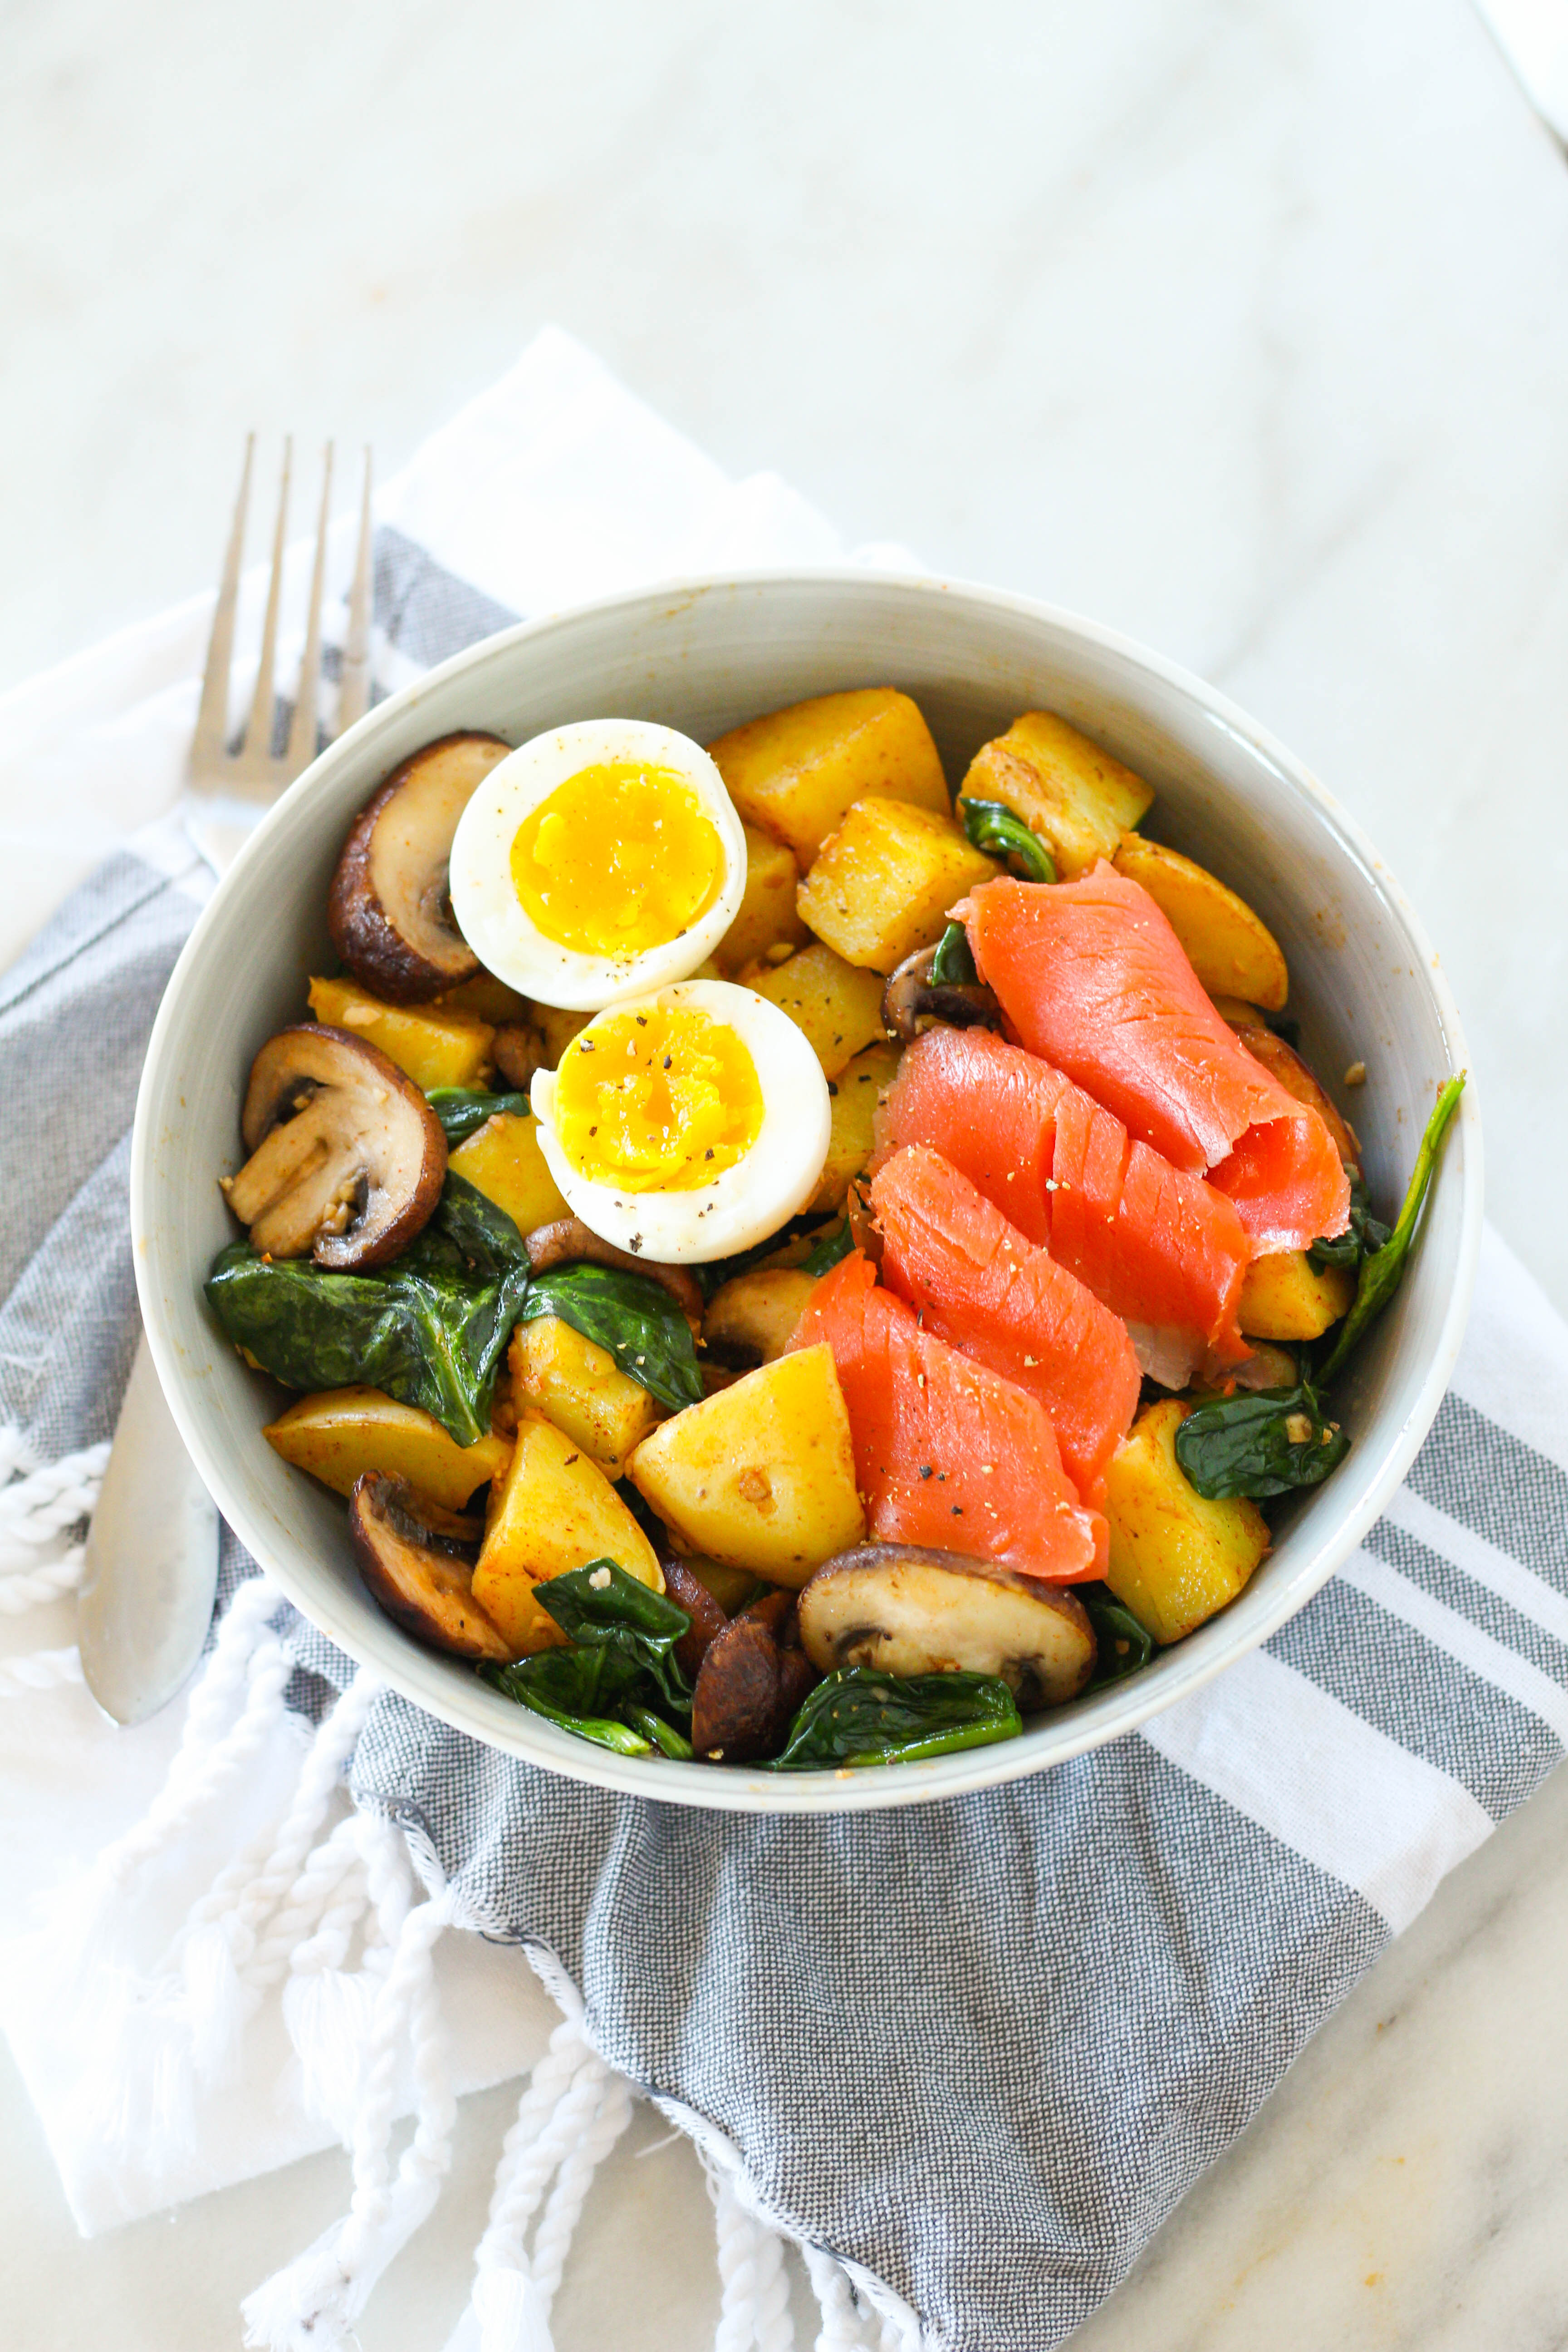 This protein packed smoked salmon power breakfast bowl is the perfect way to start your day! Fill up on fiber and vitamins from the veggies, healthy starch from the potatoes, and savory smoked salmon and an egg for protein.